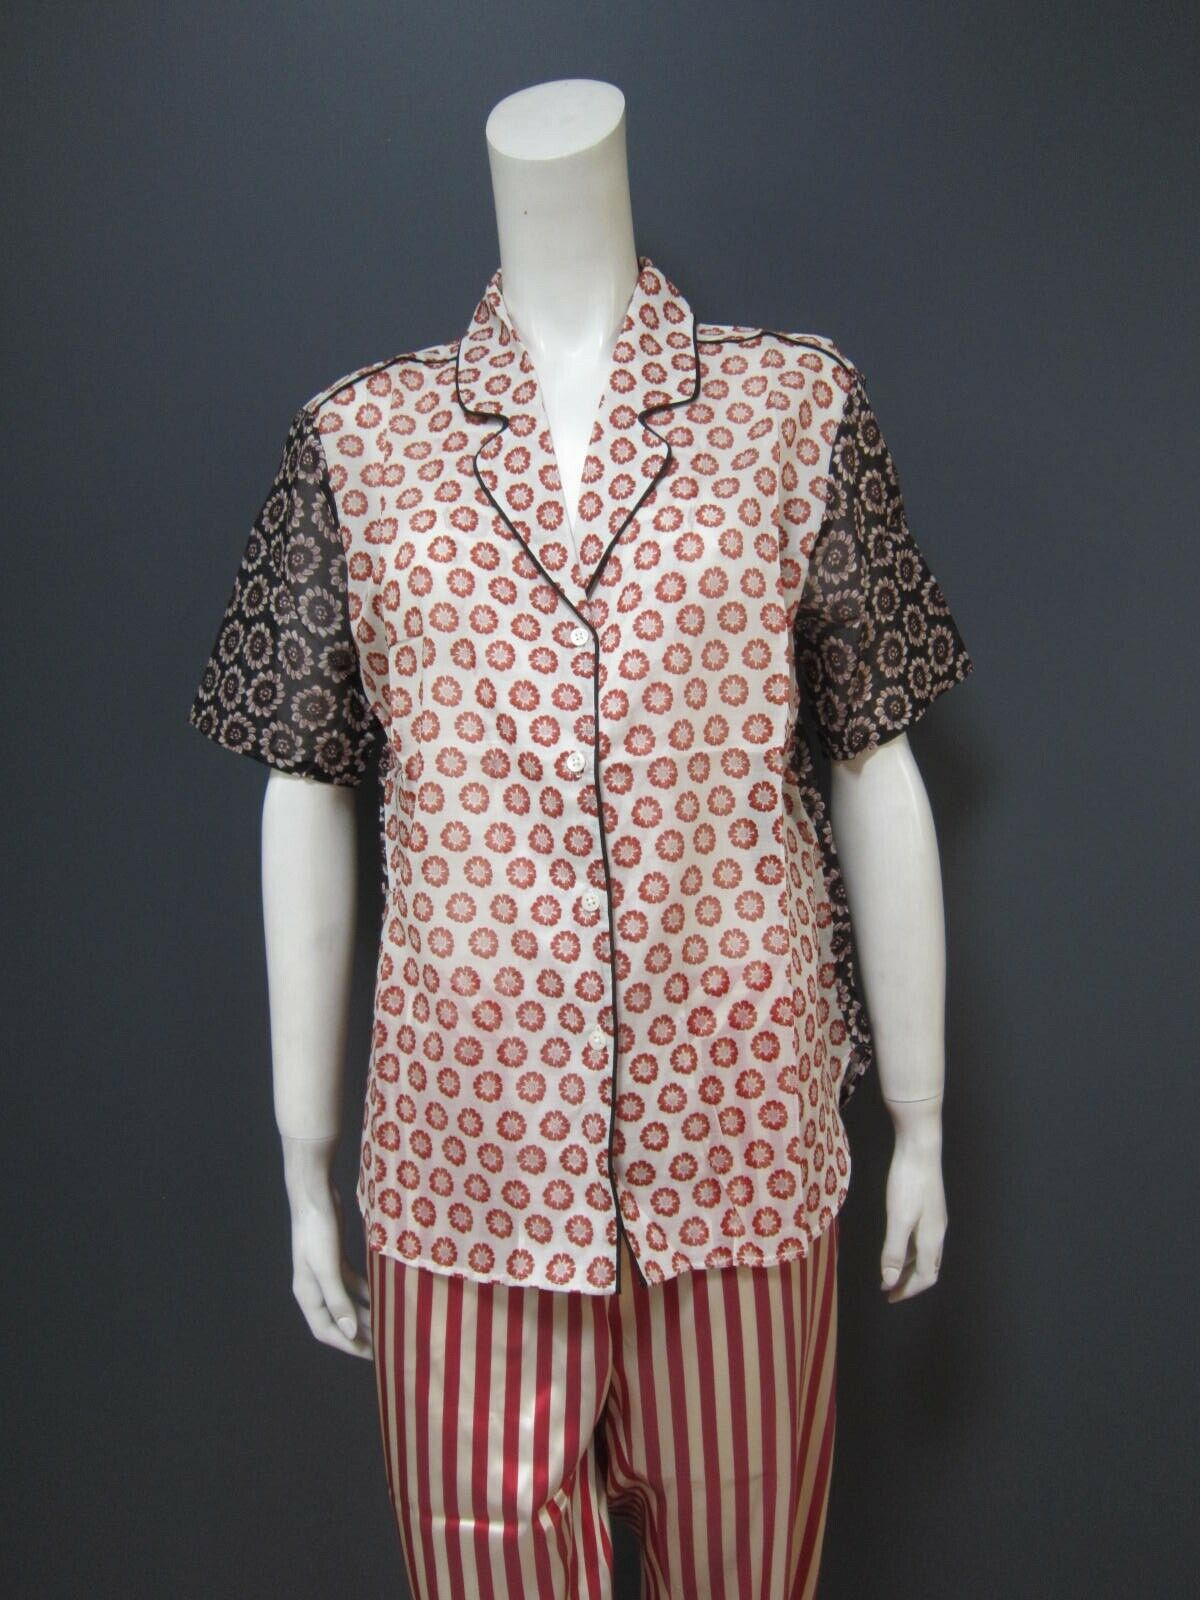 CHLOE STORA  cotton top   blouse NEW, never used, perfect condition  Größe 42